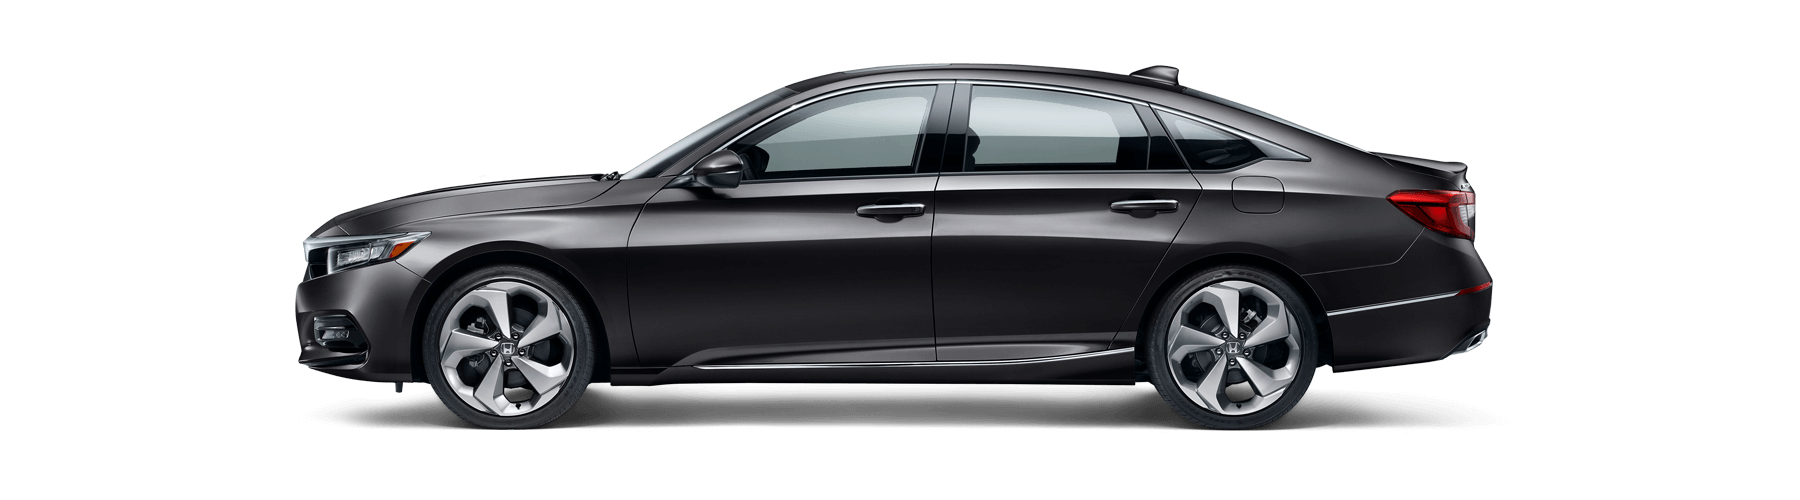 2019 Honda Accord Sedan Side Profile